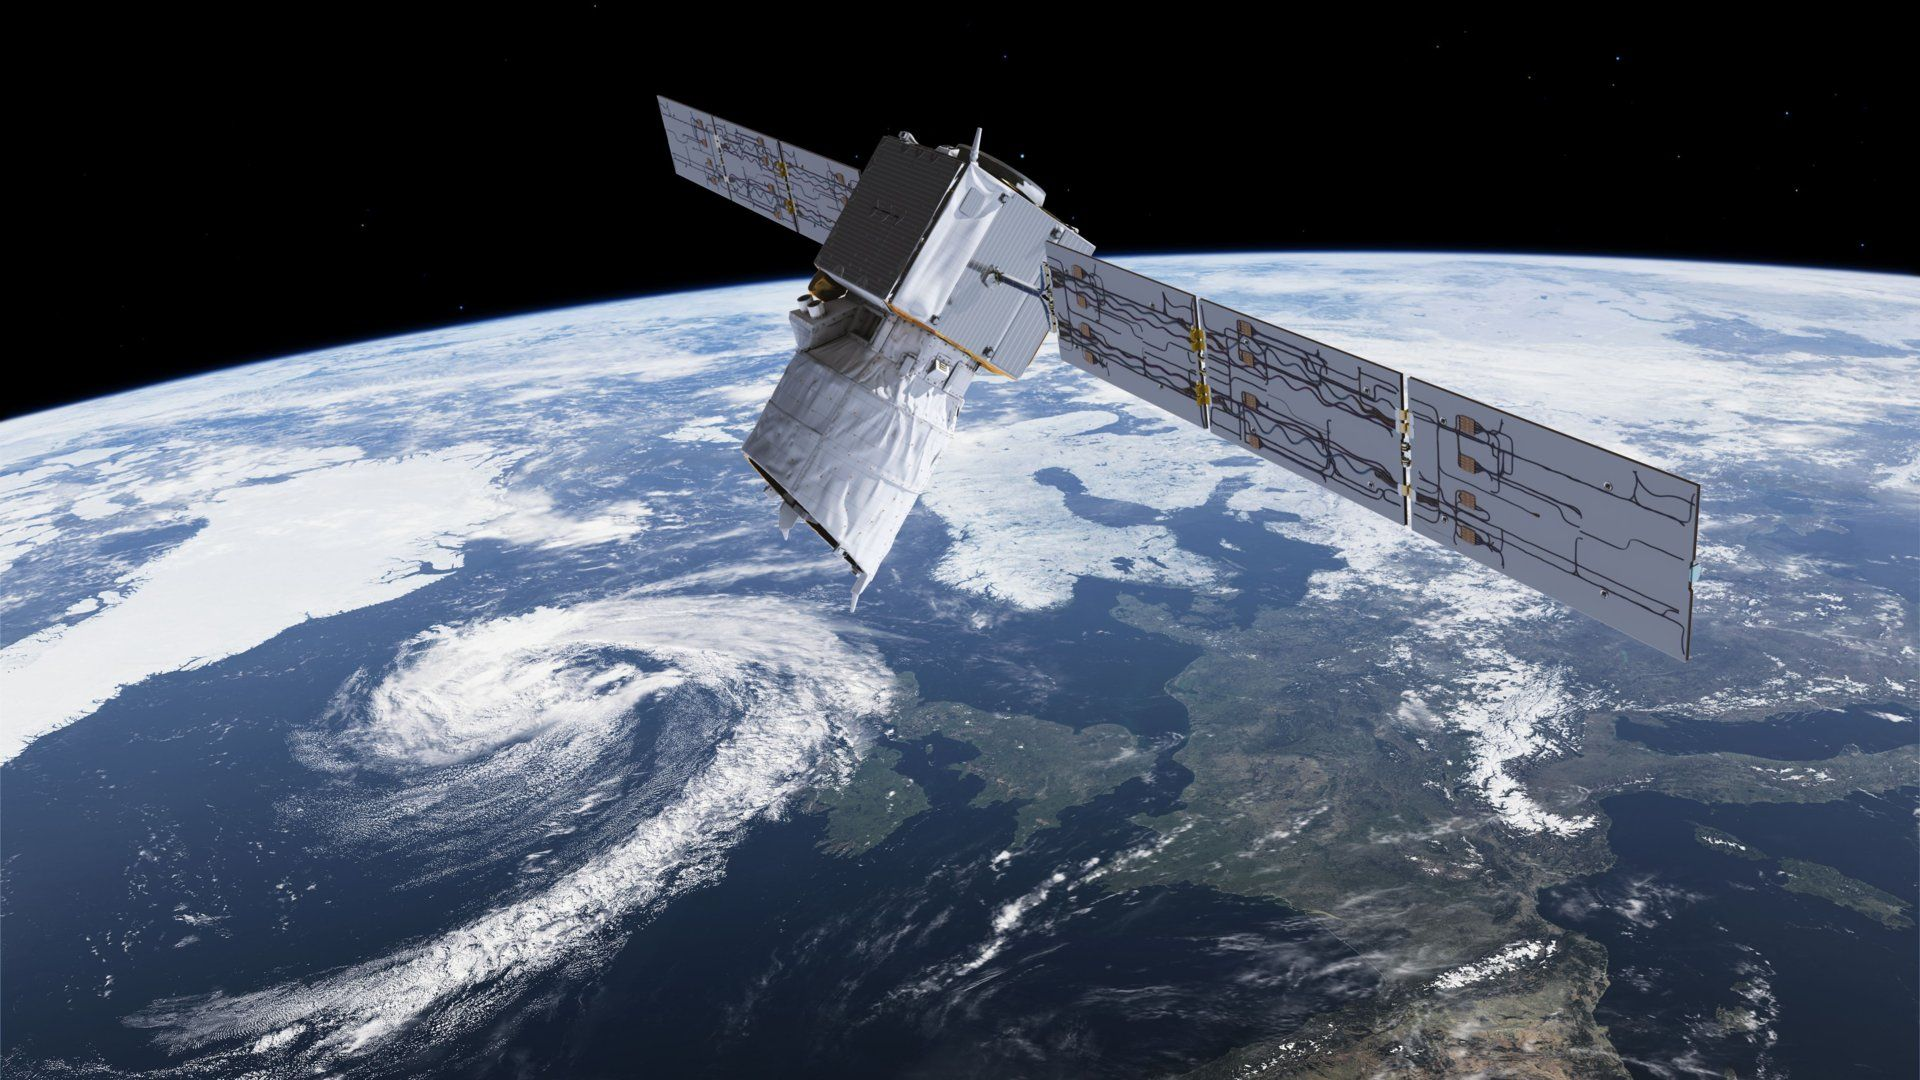 Measuring Cyclones Highlight Mob Jpg 1920 1080 Spacex Weather Predictions Space Exploration